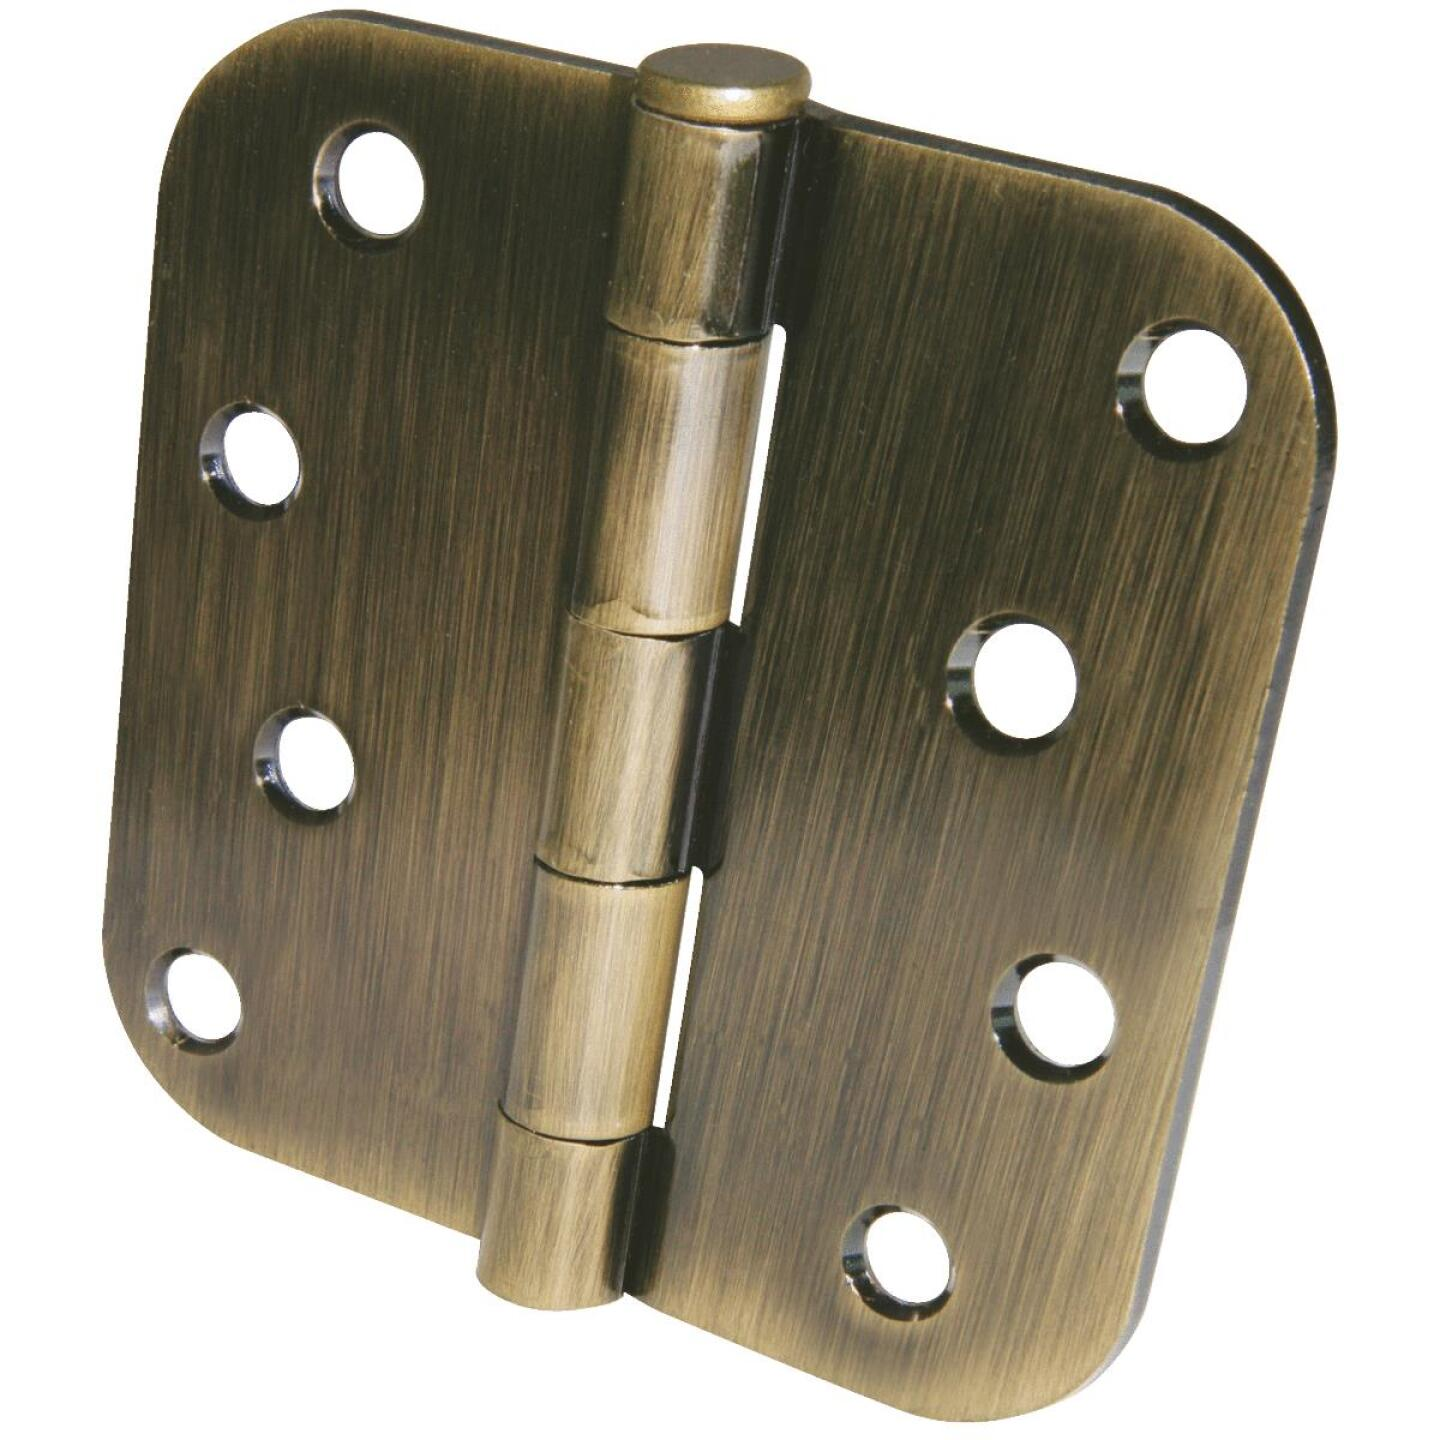 Ultra Hardware 4 In. x 5/8 In. Radius Antique Brass Door Hinge (3-Pack) Image 1